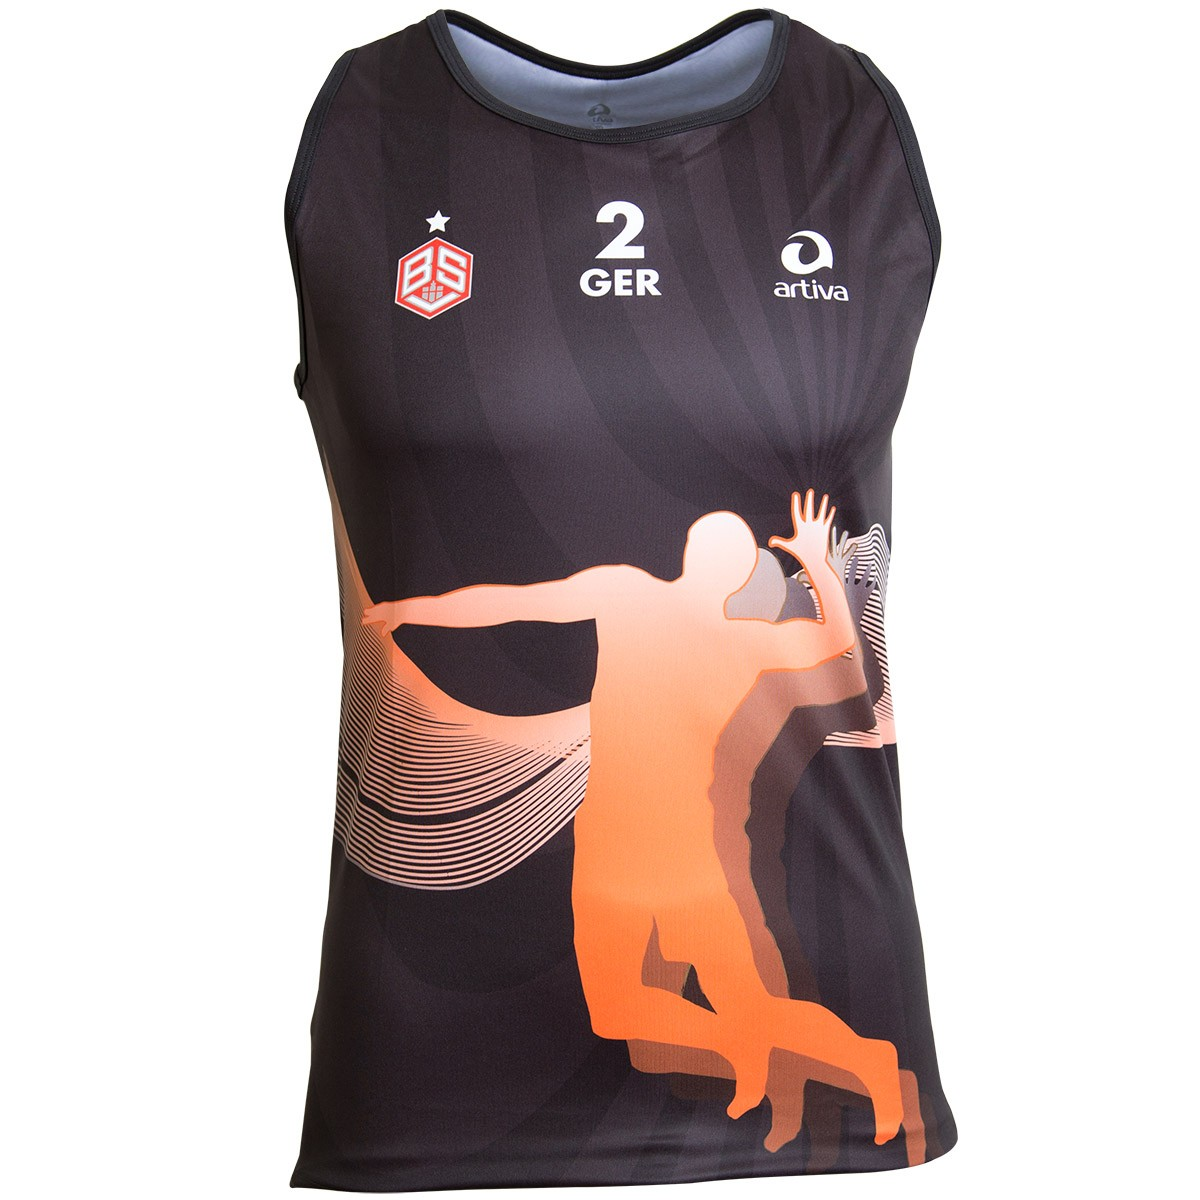 Individuelle Beach Volleyball Shirts für Jeden